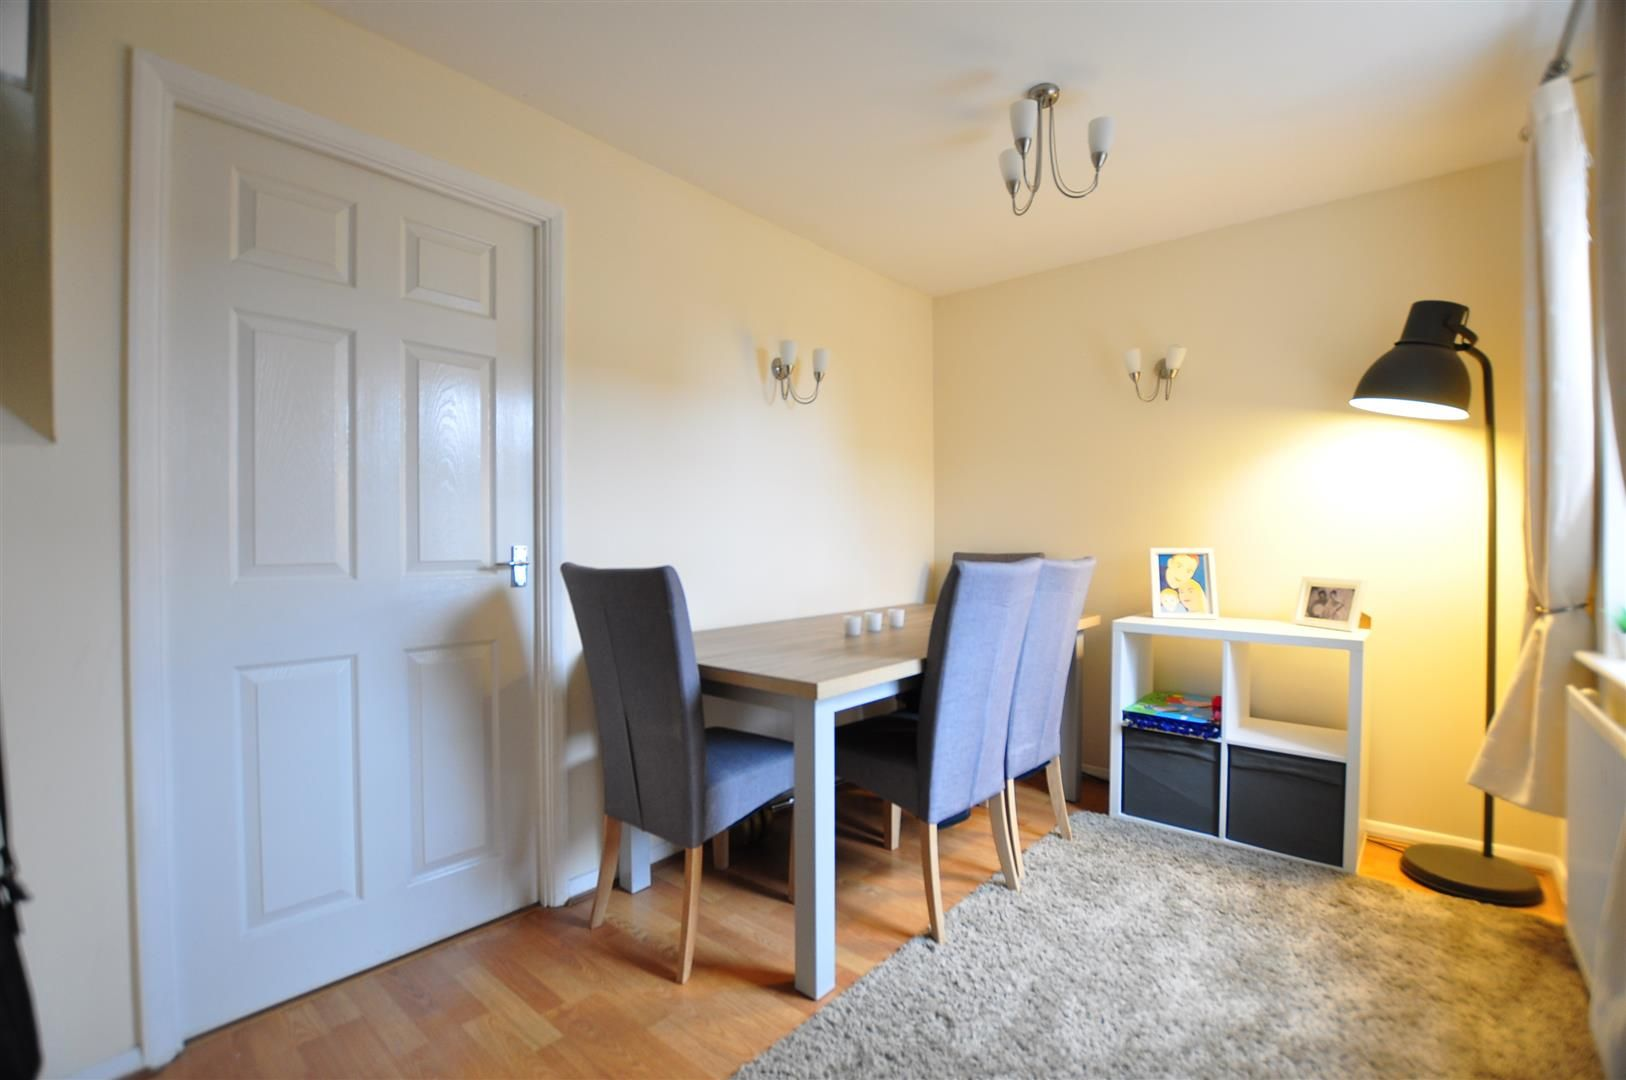 3 bed end-of-terrace for sale 4